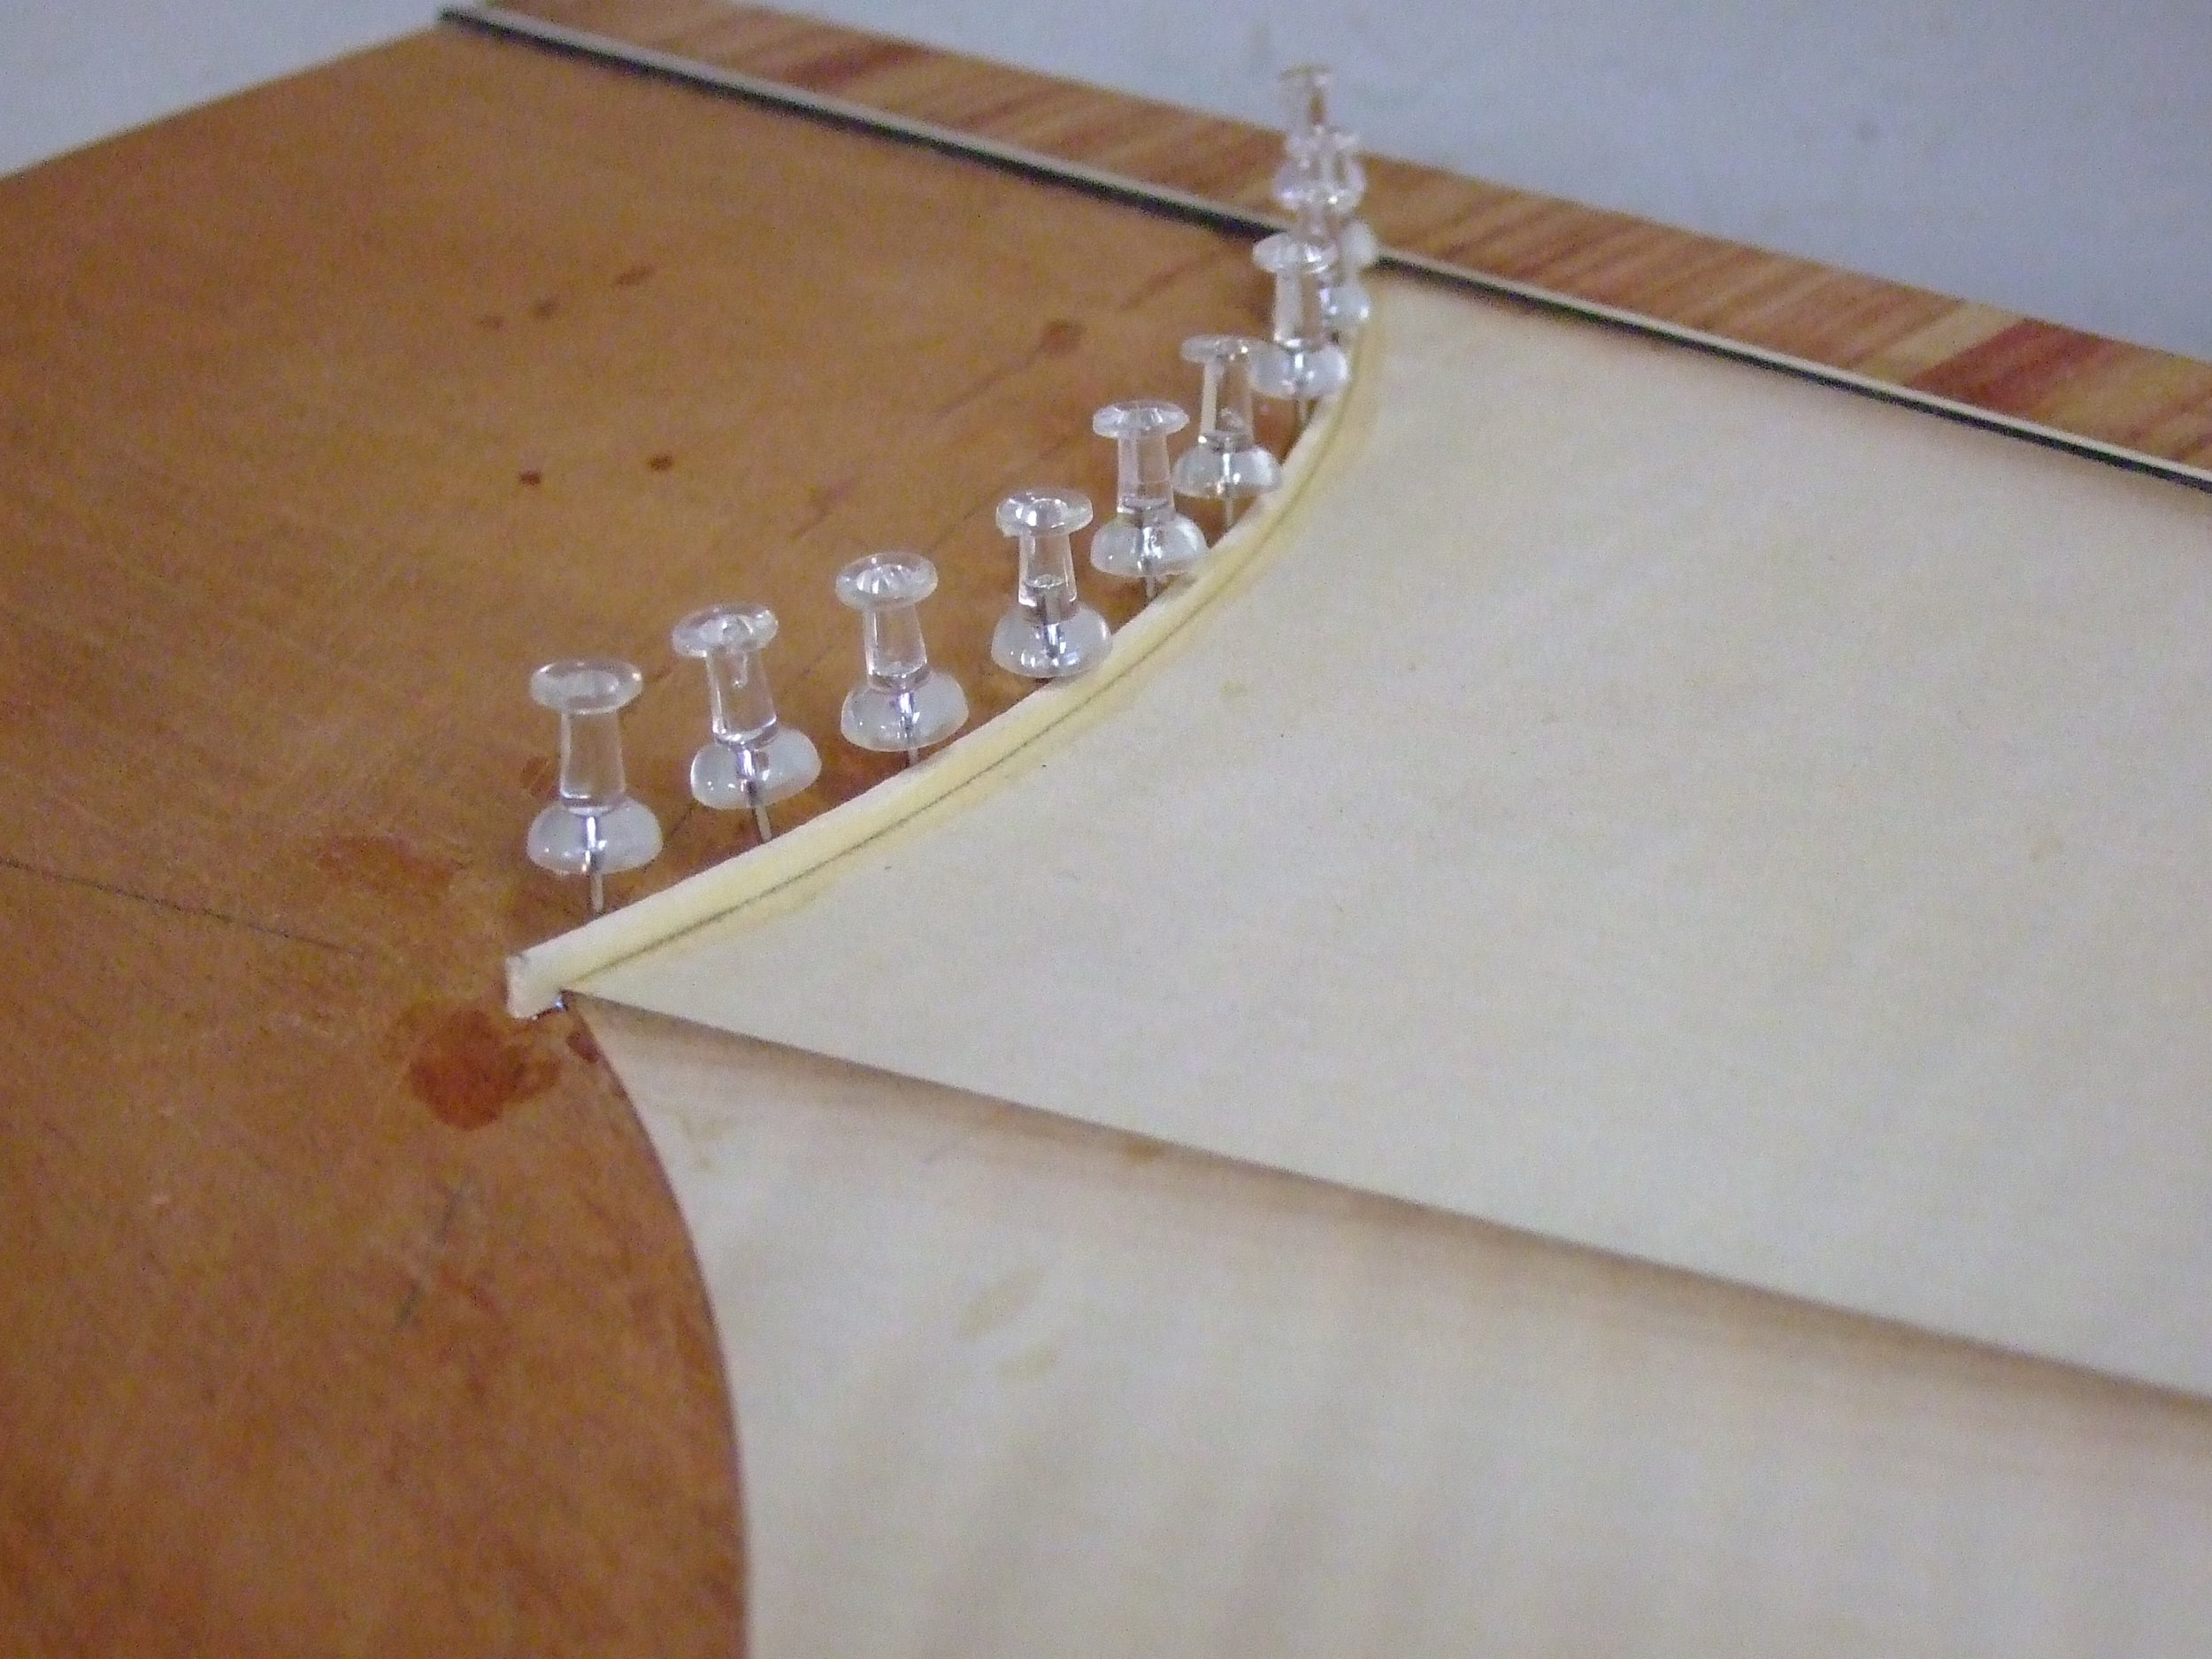 Glueing and clamping holly strings to the edge of the sycamore fan. I made all the strings from solid holly boards because the original strings were thicker than modern veneer.